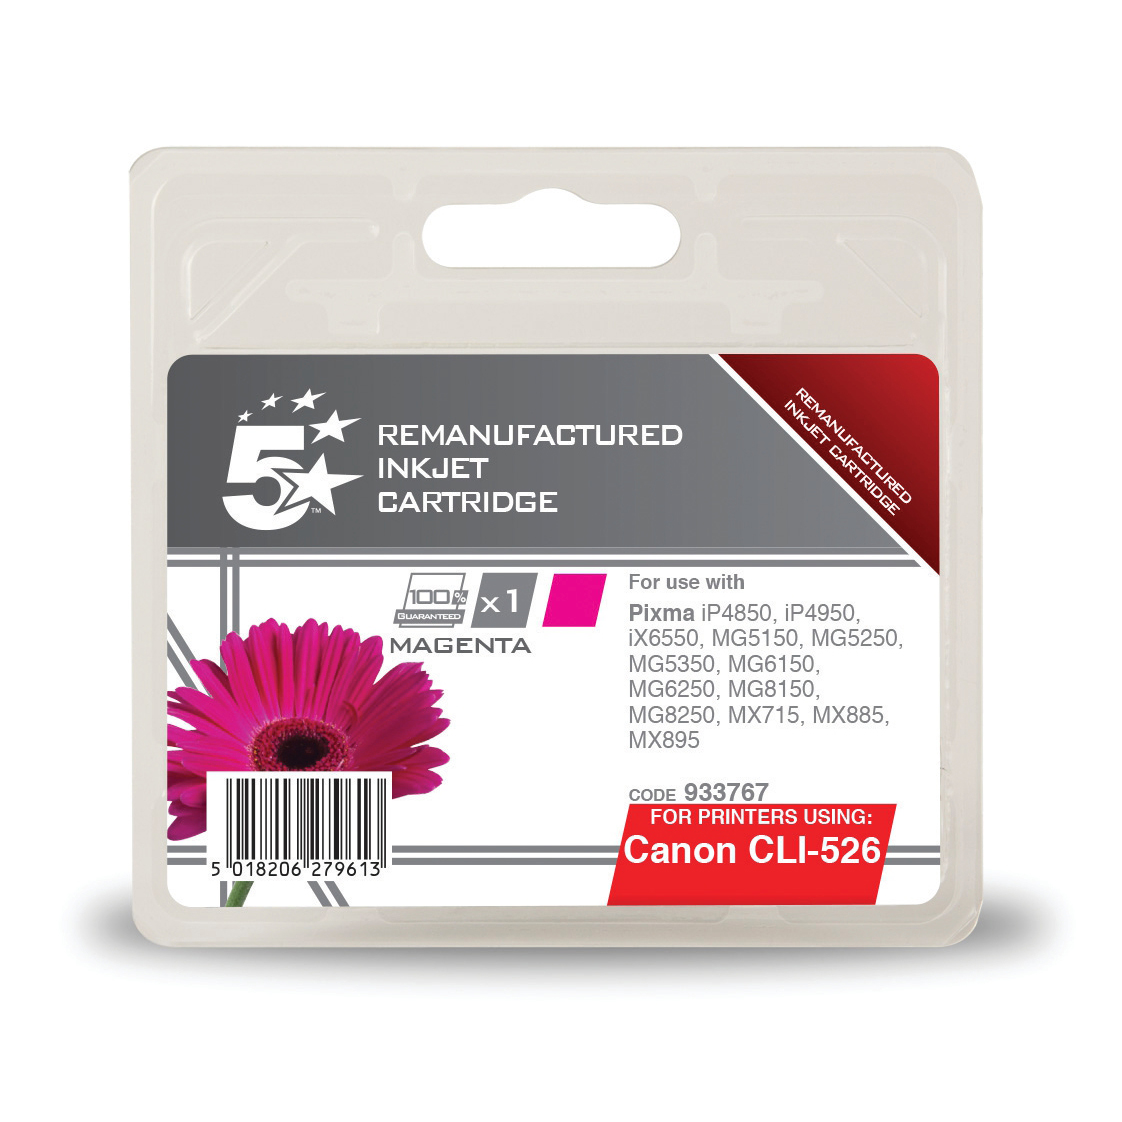 5 Star Office Remanufactured Inkjet Cartridge Page Life 204pp 9ml Magenta [Canon CLI-526M Alternative]